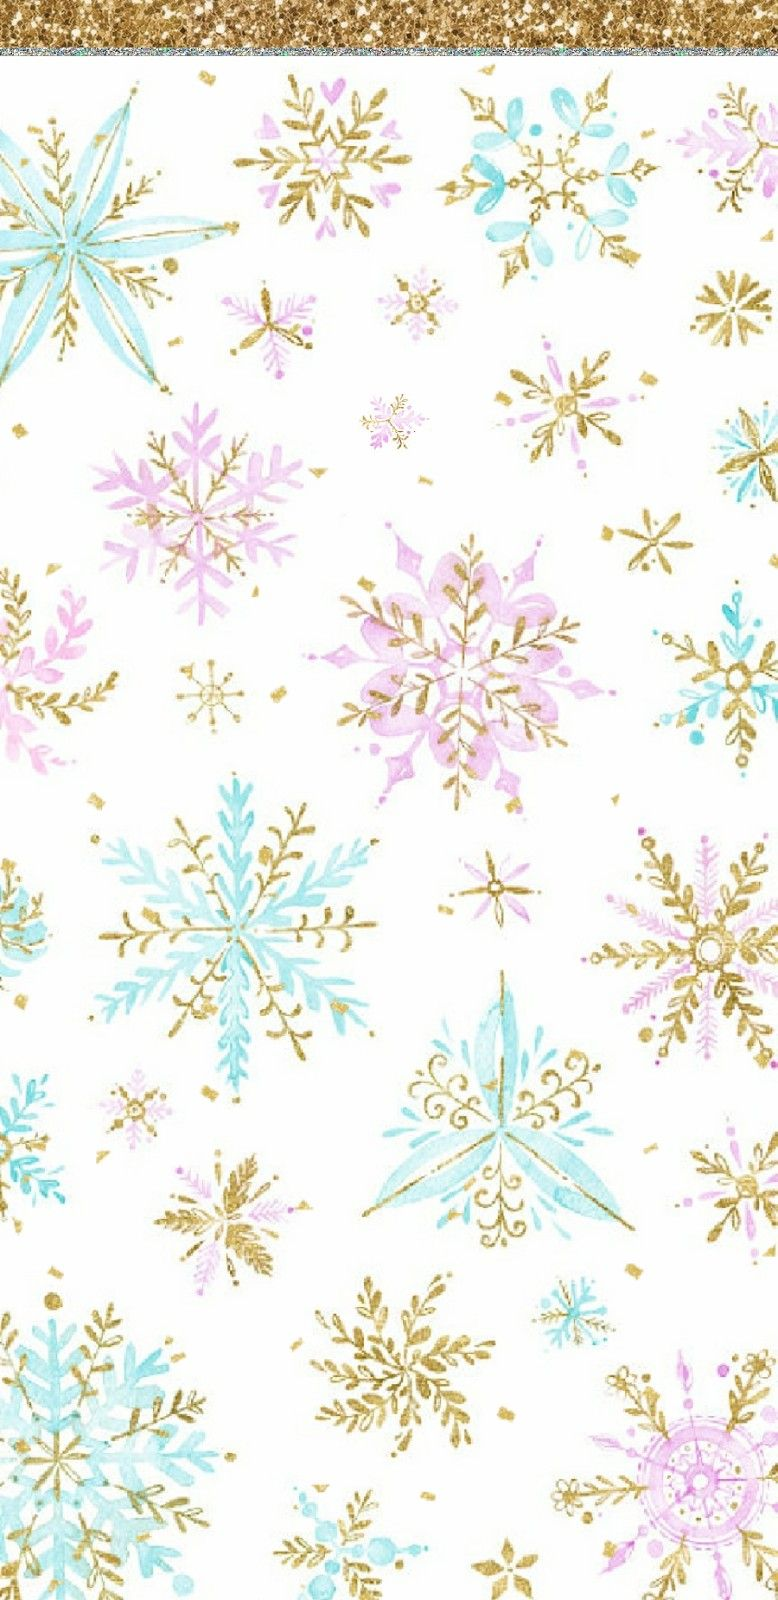 Pin By Angelmom4 On Xmas Wallz Wallpaper Iphone Christmas Iphone Wallpaper Winter Winter Wallpaper